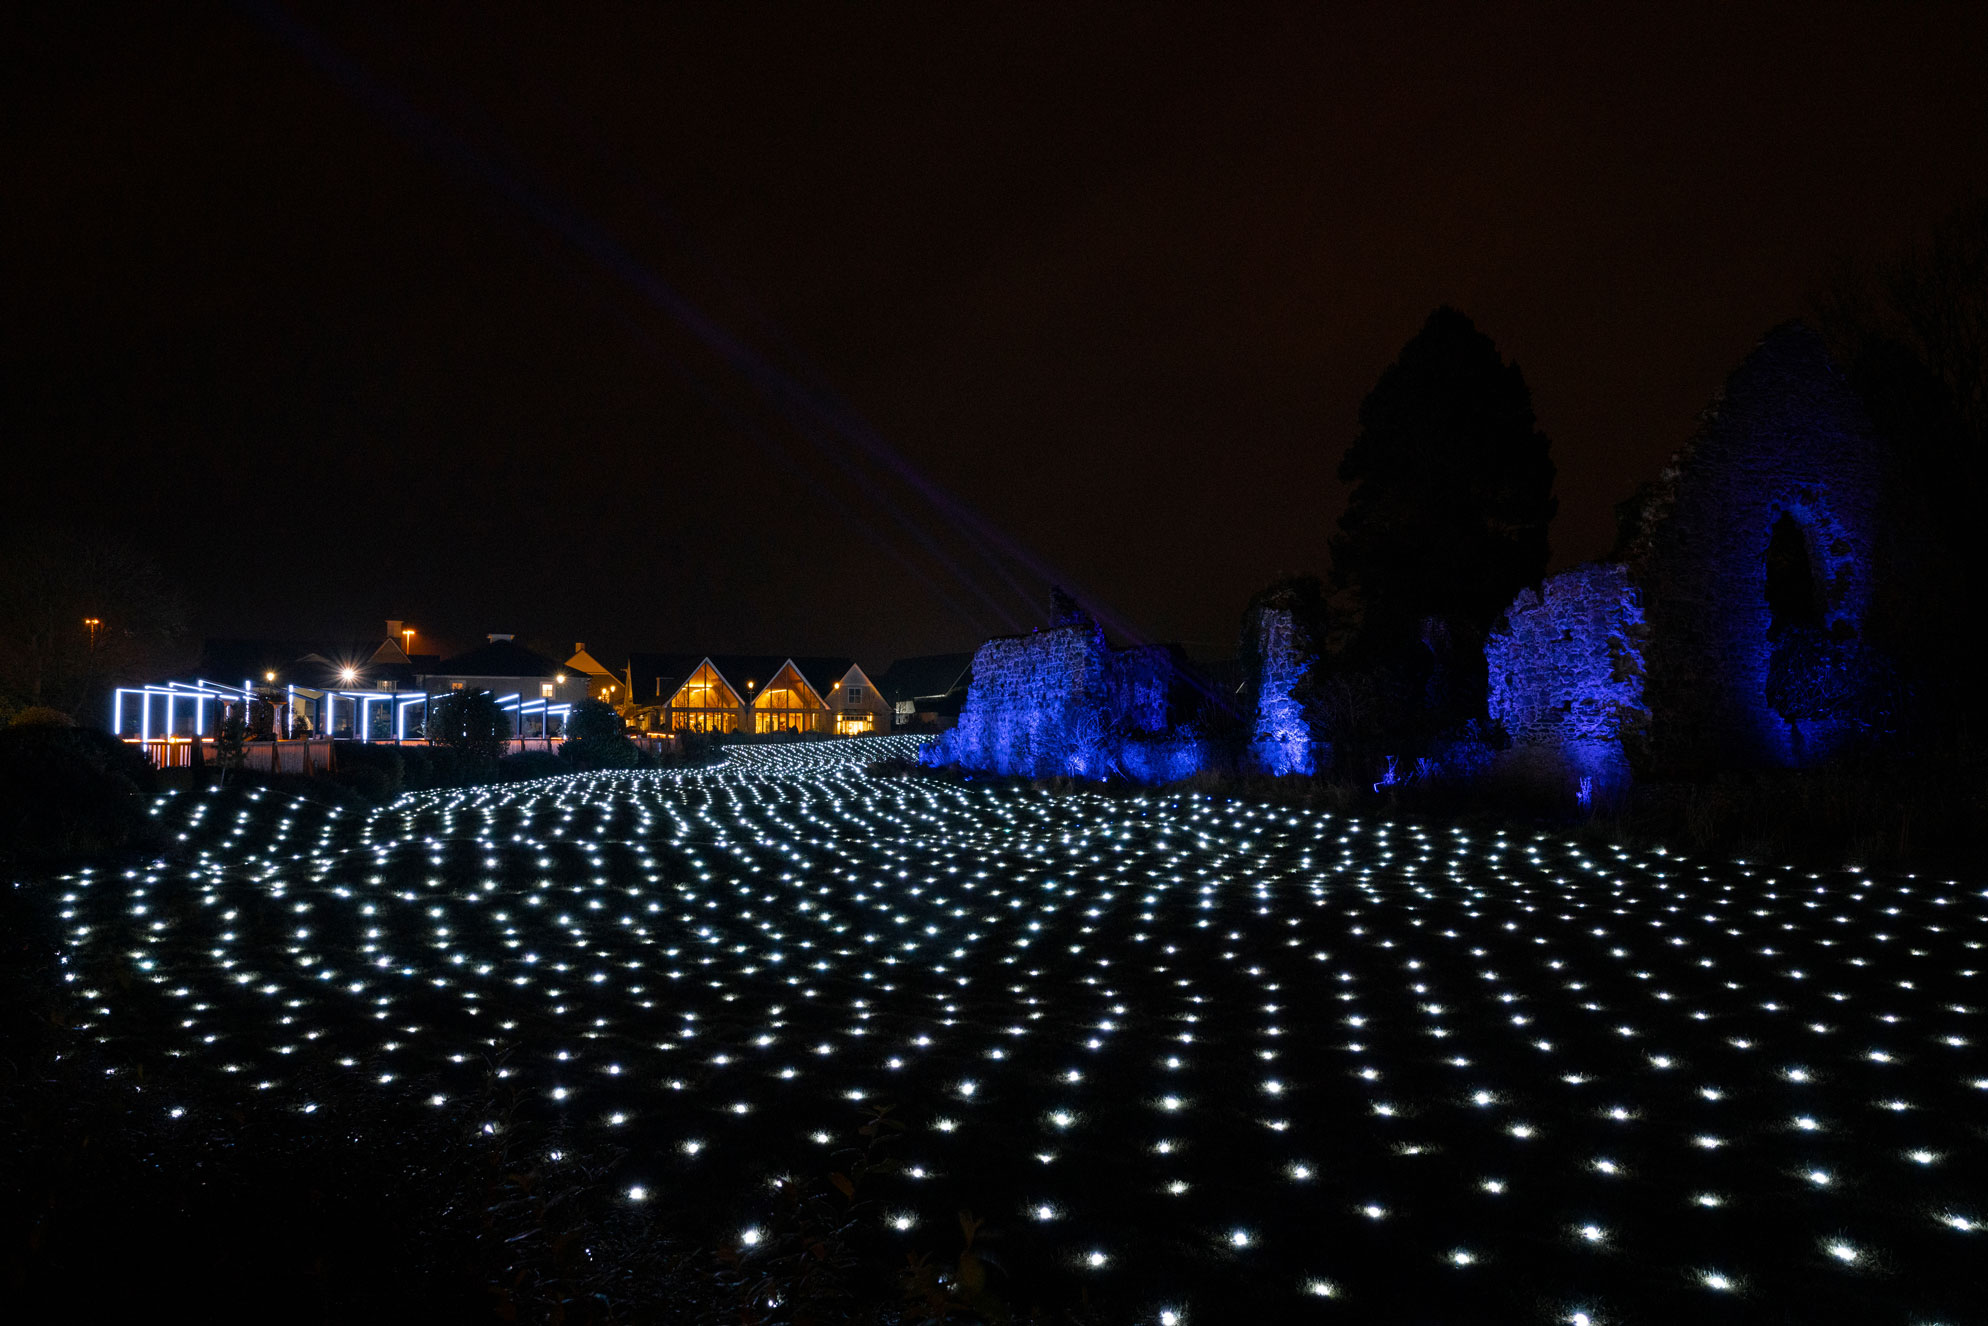 The field of light at Kildare Village